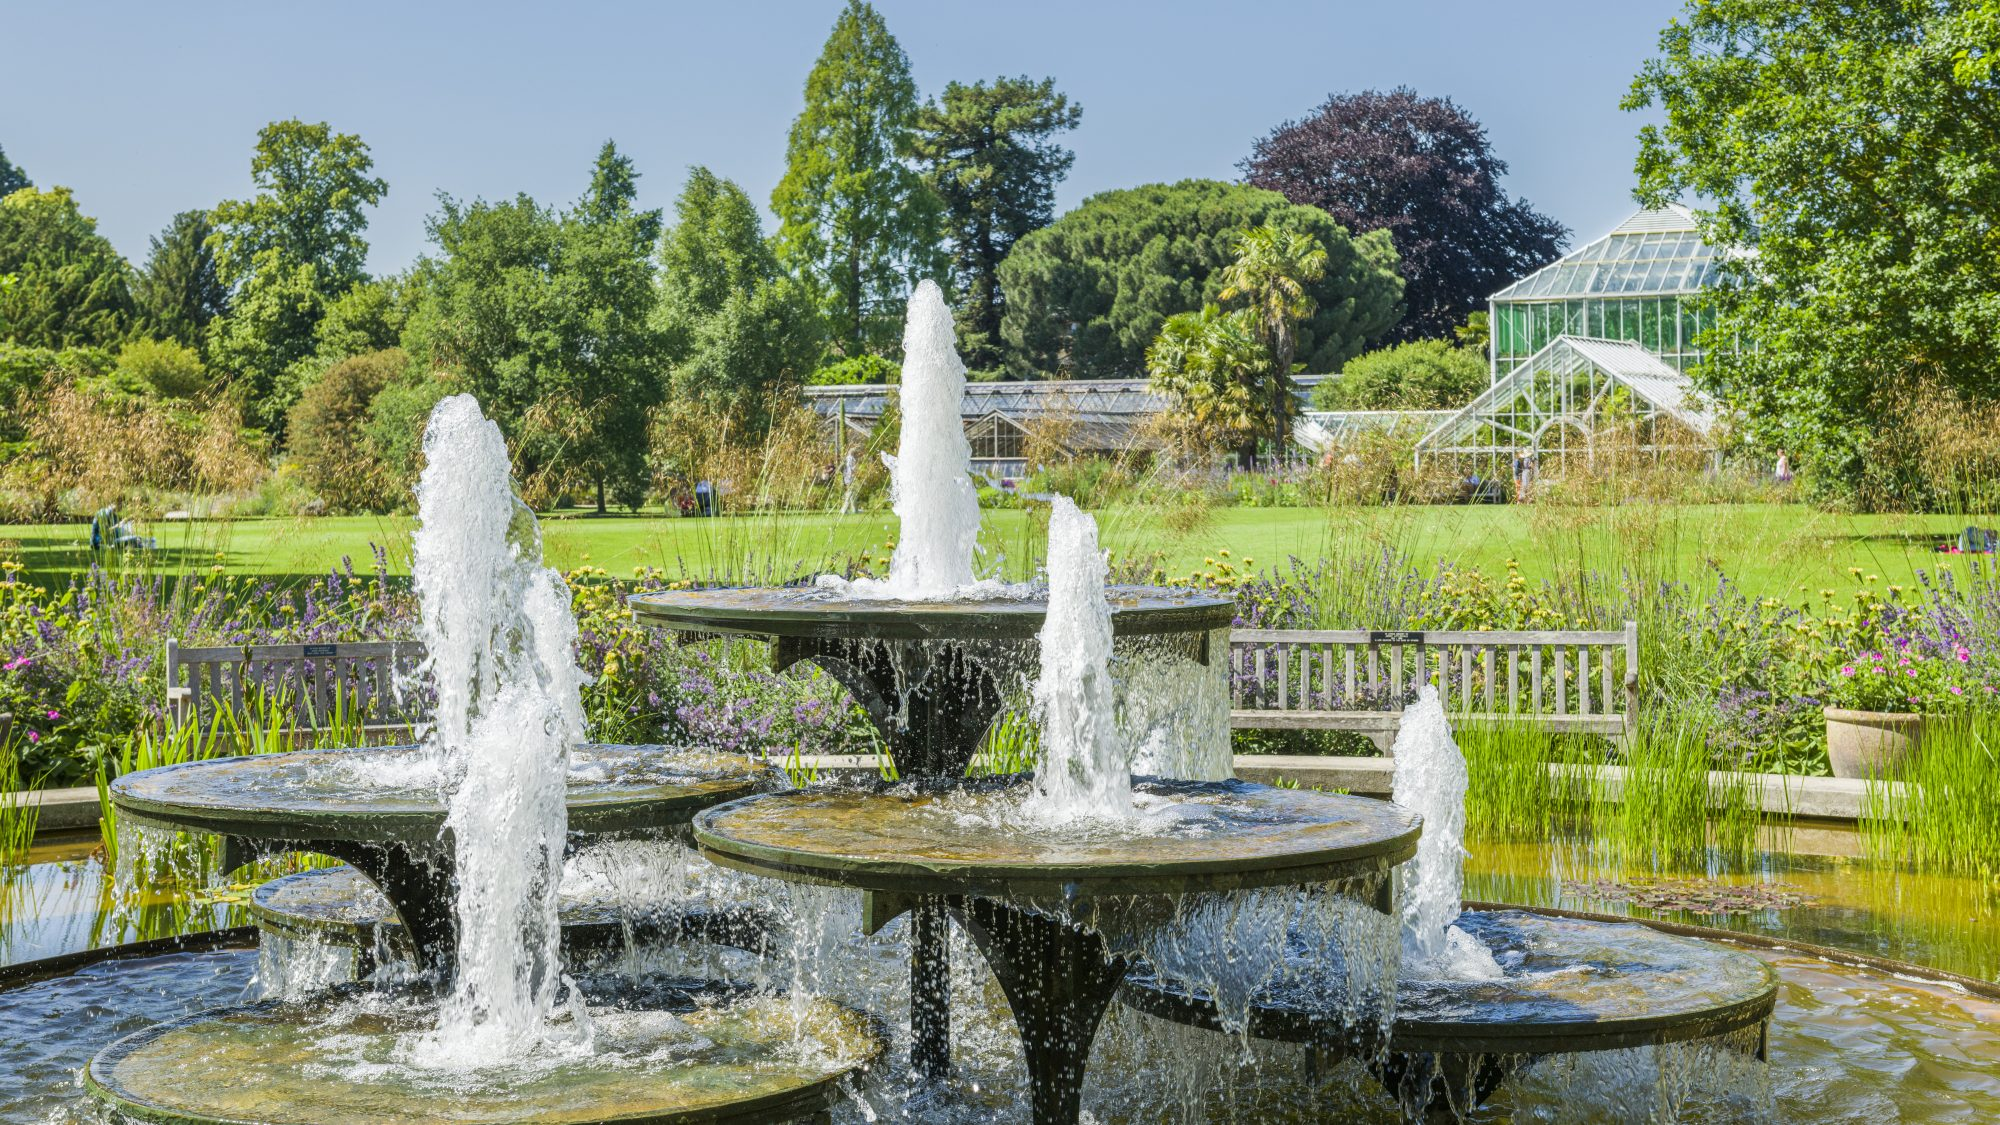 The iconic fountain designed by David Mellor (1930-2009), completed in 1970. Overlooking the main lawn on a bright day.